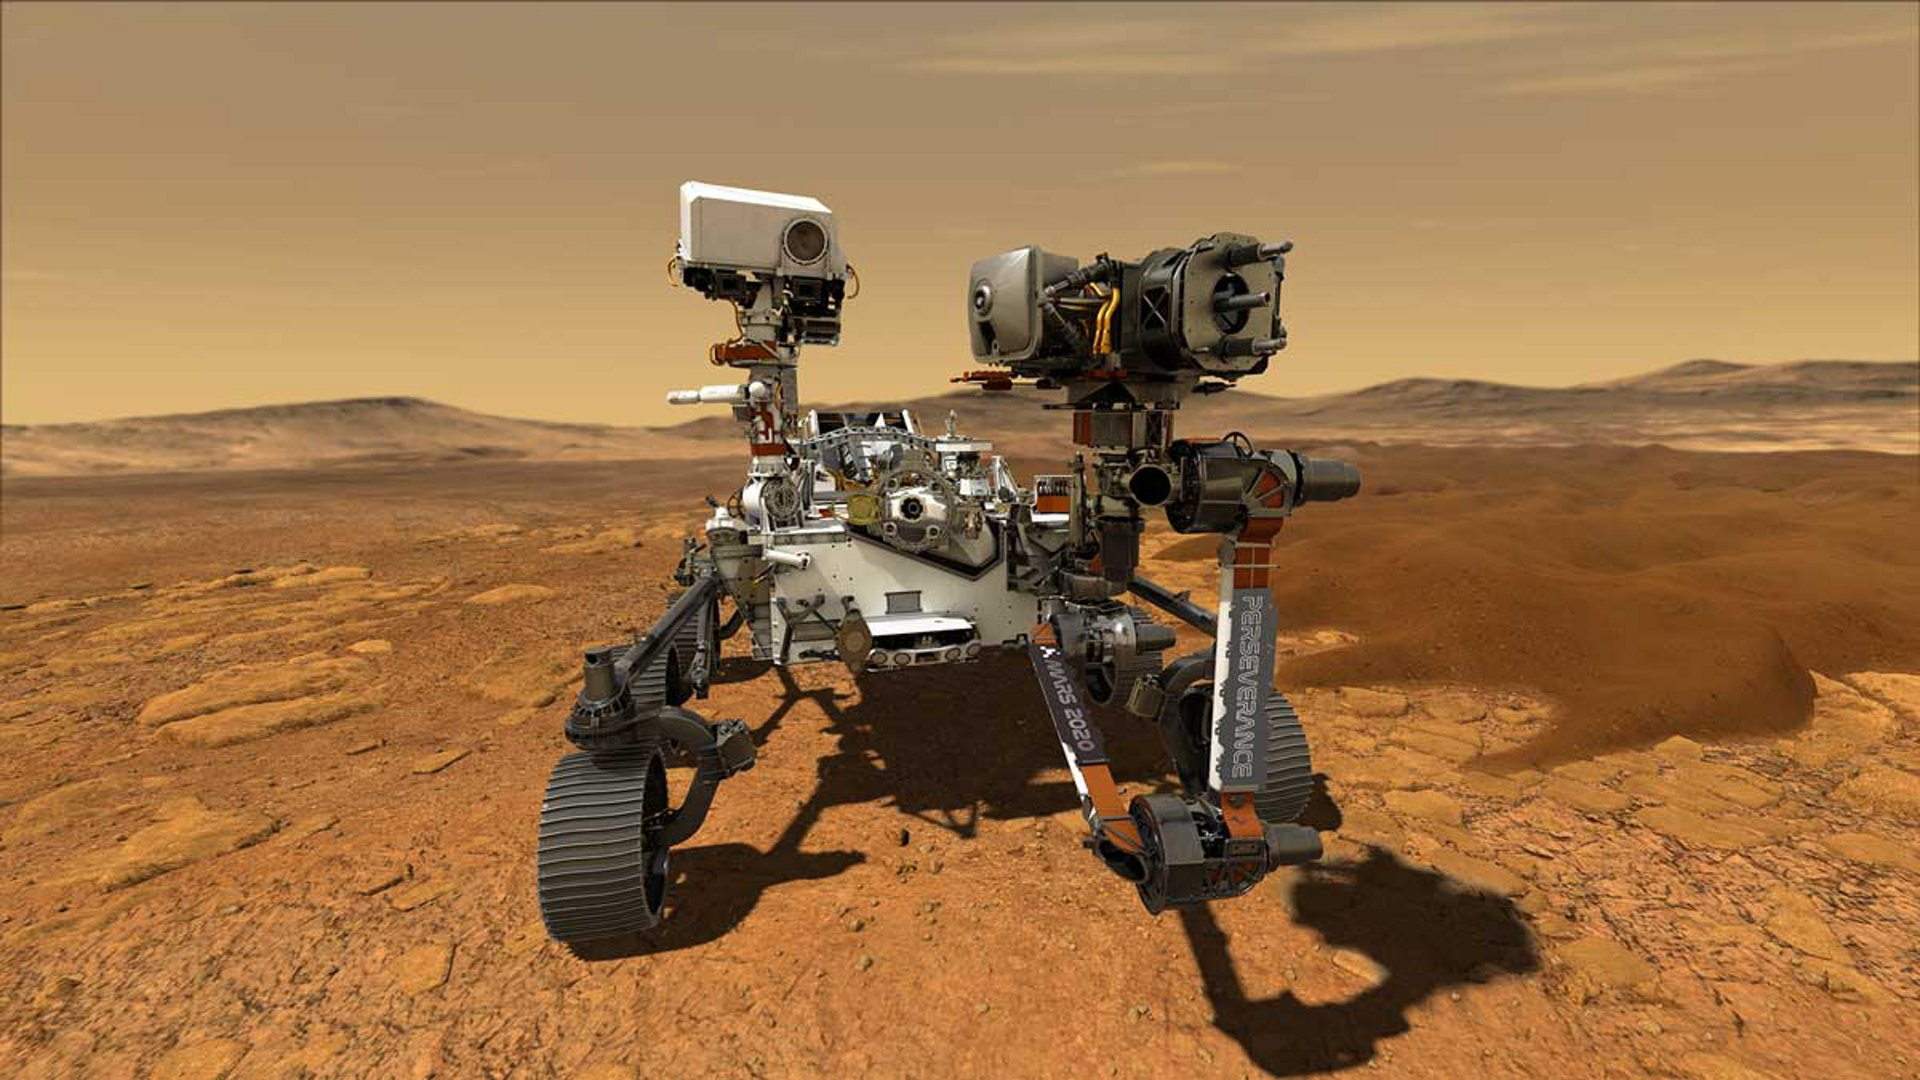 Mars2020 mission plans to examine Martian rocks and soils in greater detail than ever.